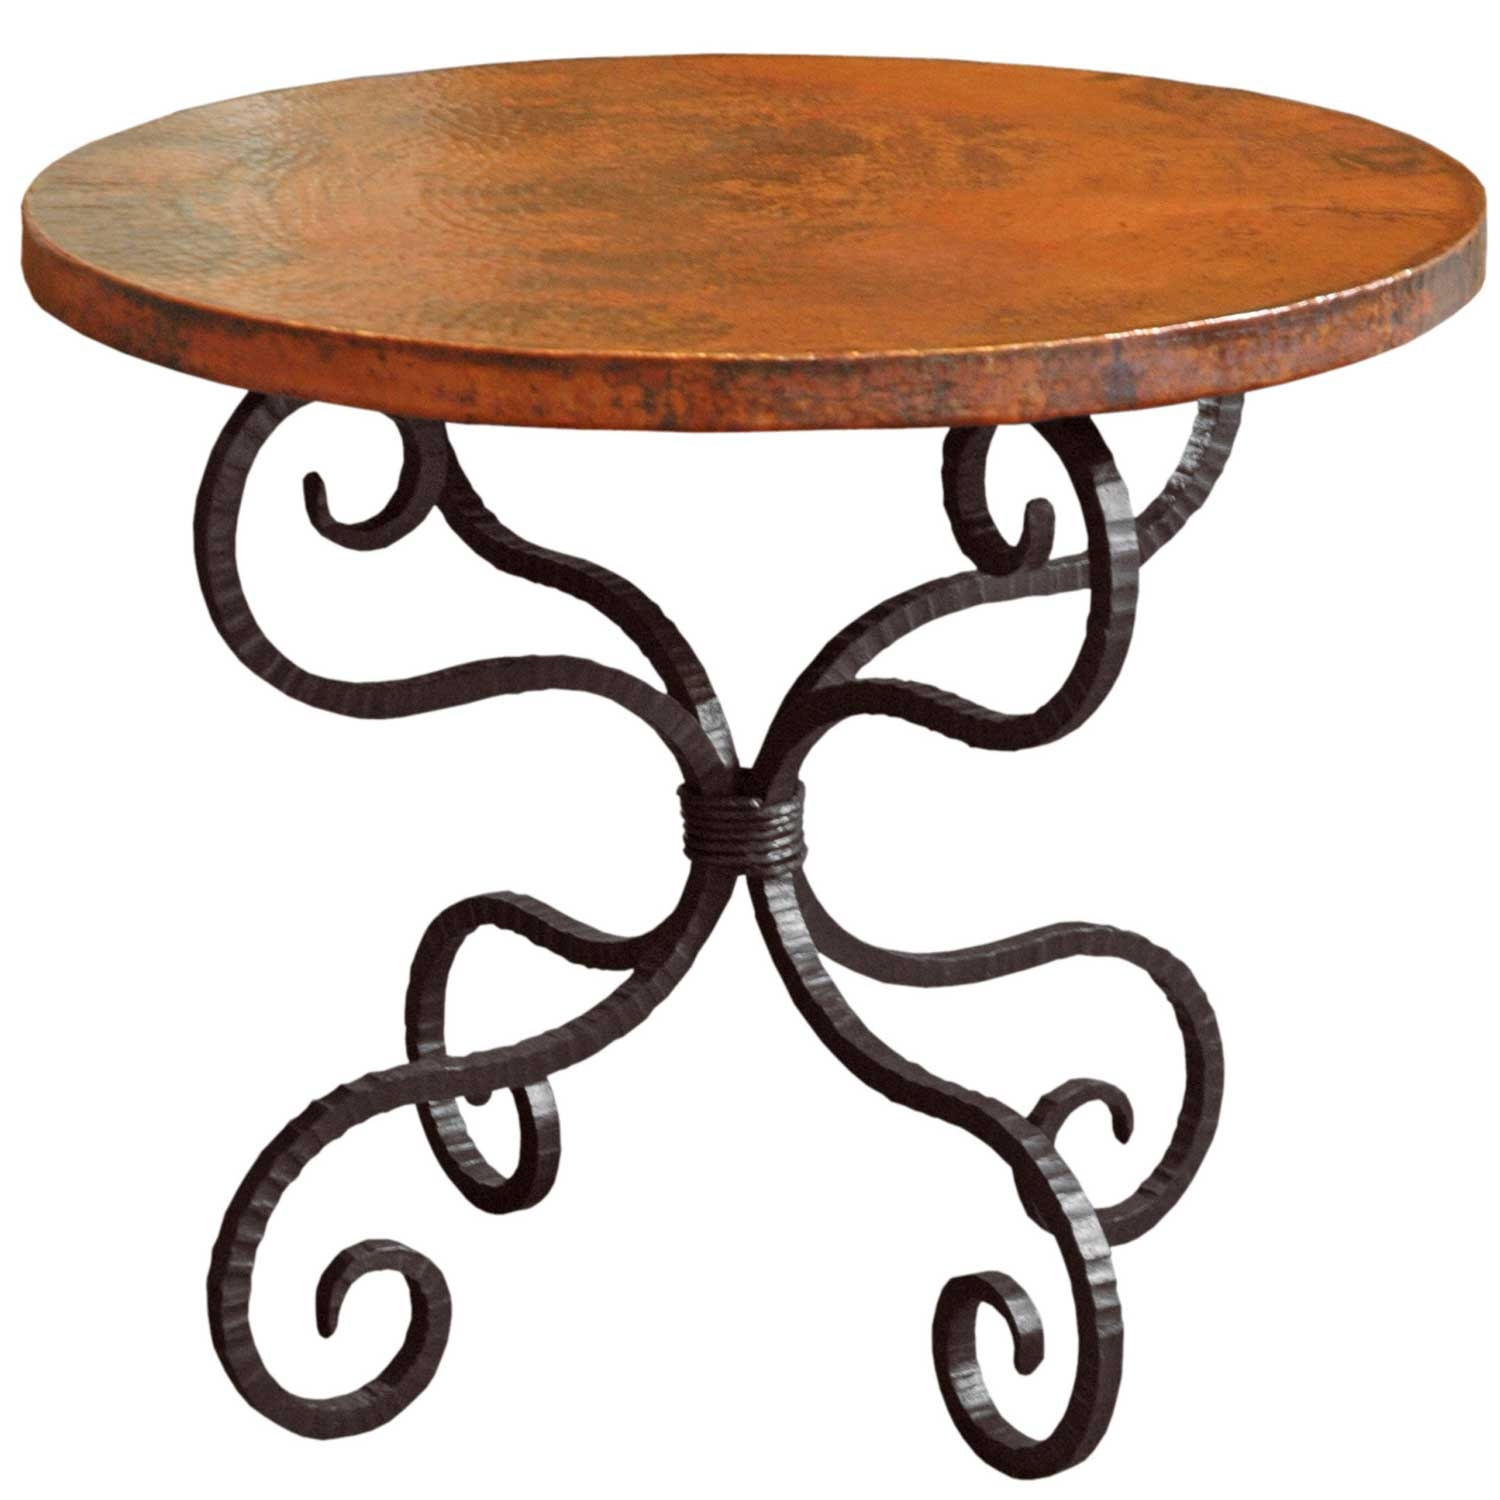 Alexander Wrought Iron End Table With 30in Round Top Timeless Wrought Iron